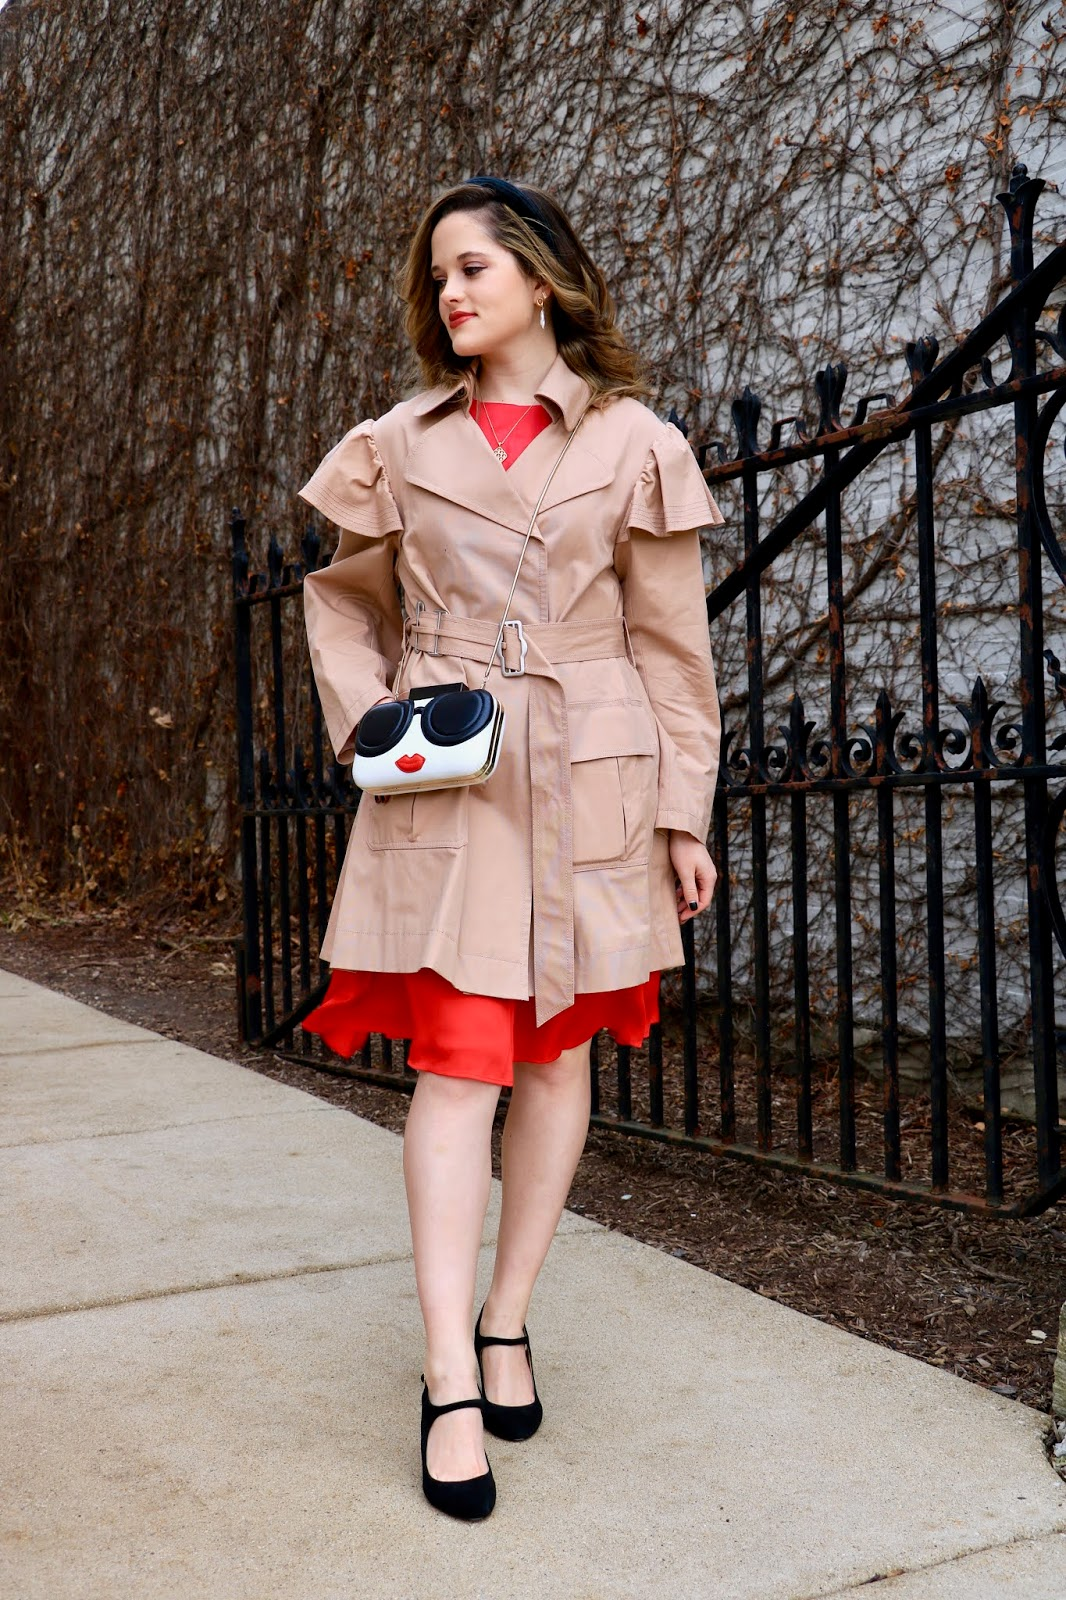 Nyc fashion blogger Kathleen Harper wearing a trench coat outfit in Winter.